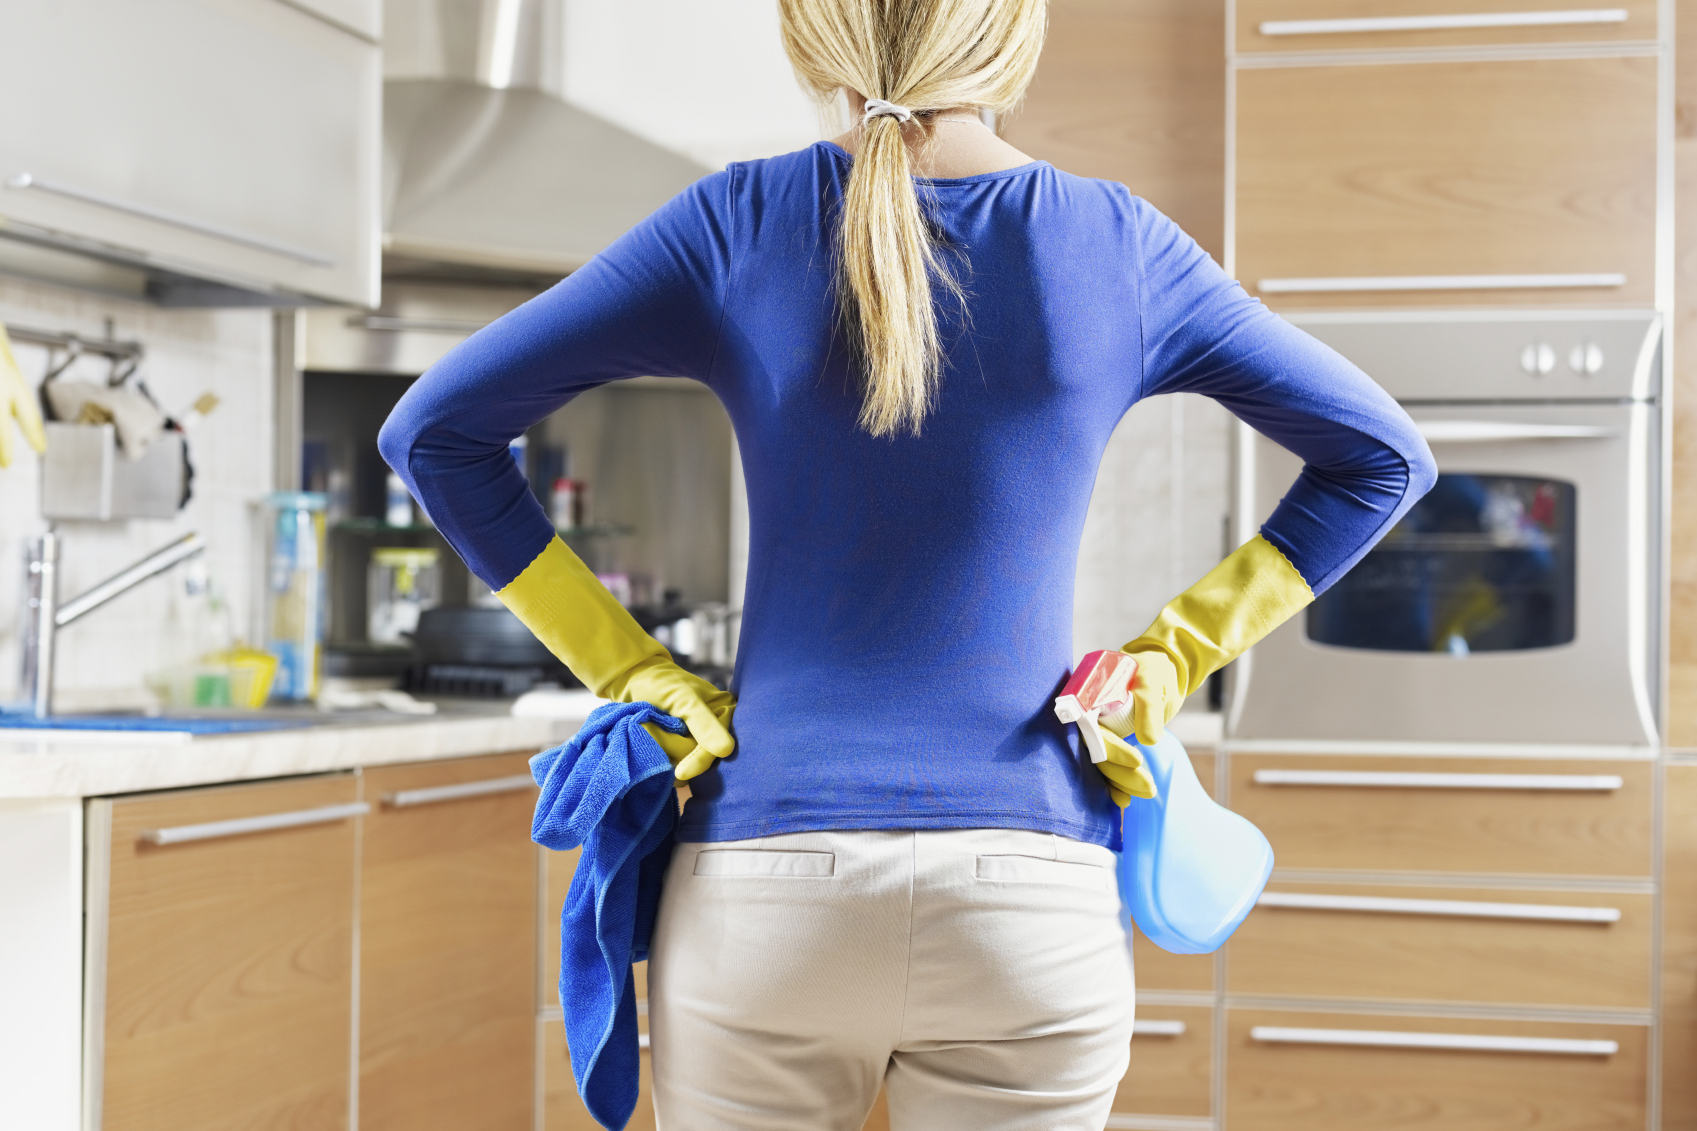 Woman with hands on hips holding cleaning supplies